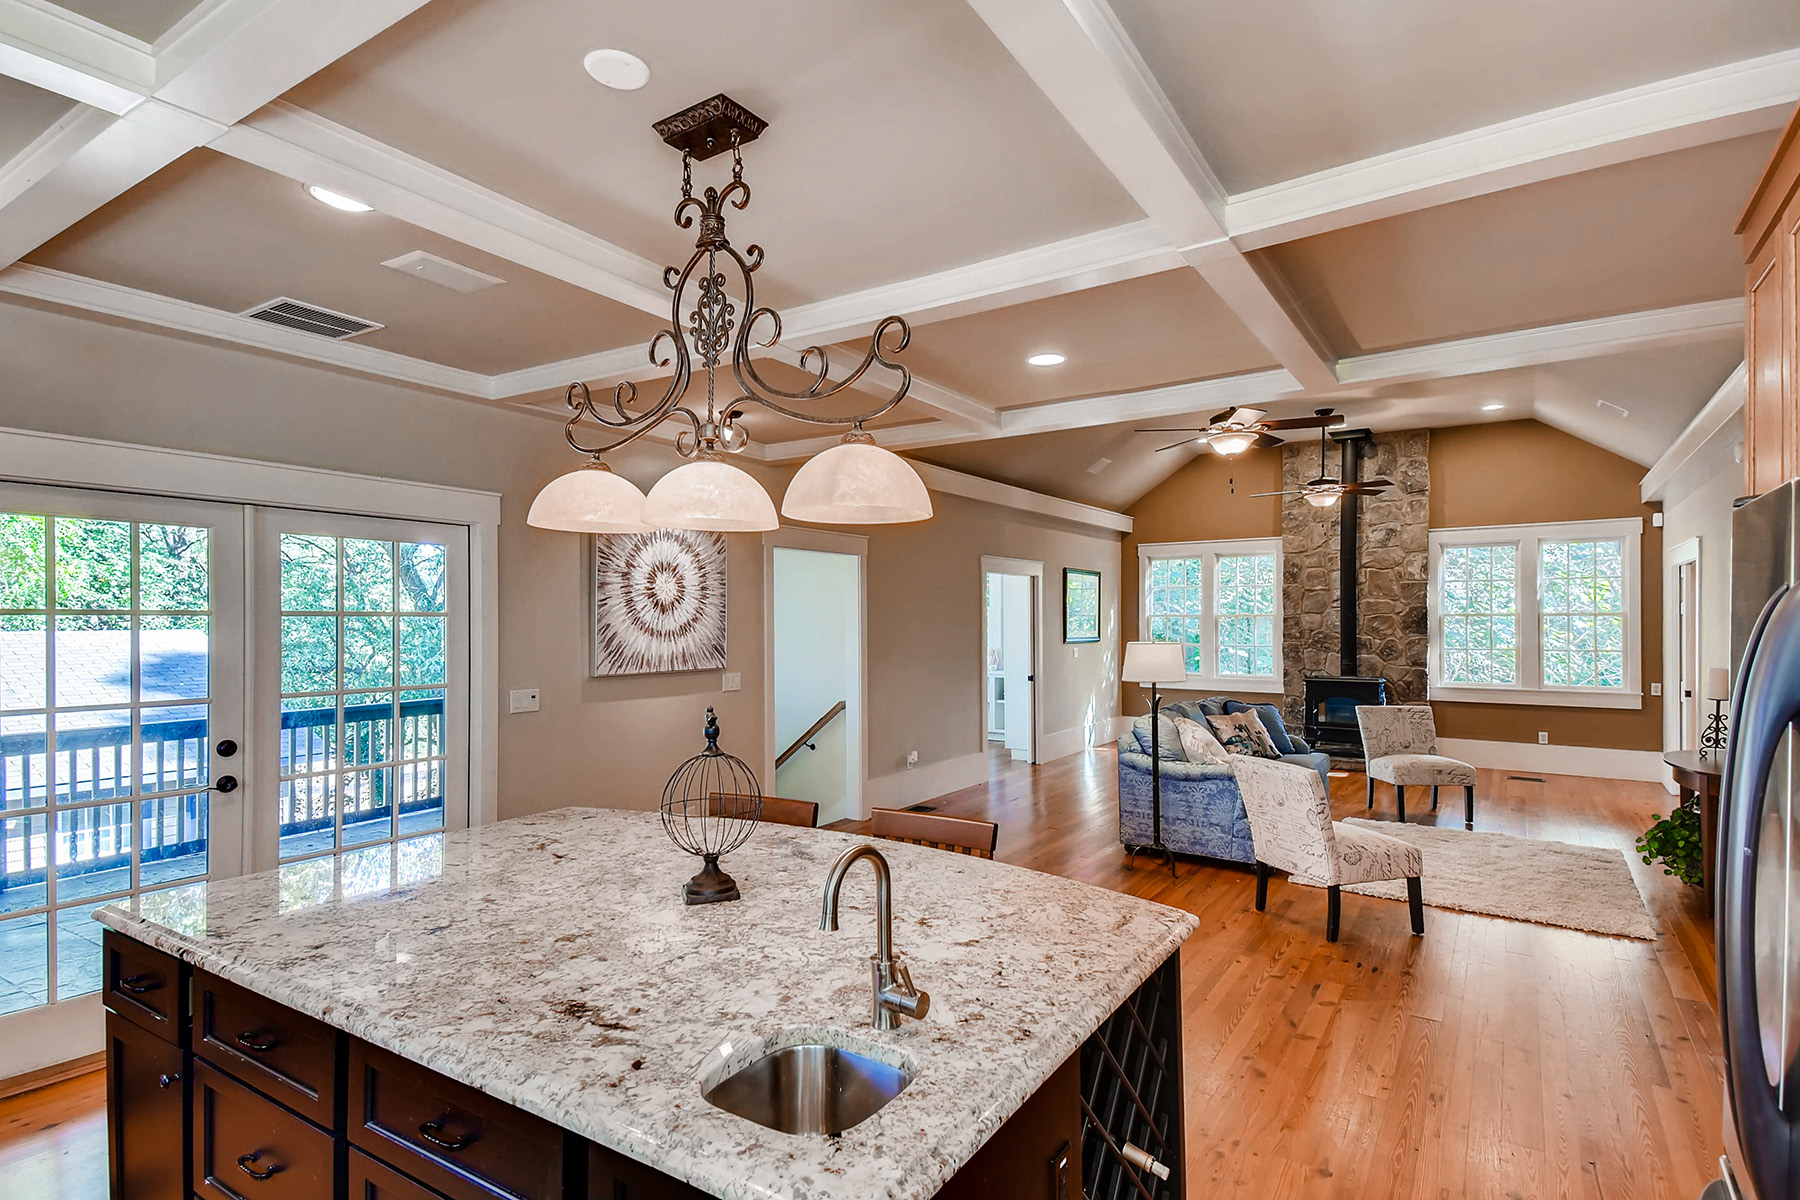 Single Family Home for Sale at Sophisticated Charm In Historic Roswell 72 Sloan St Roswell, Georgia 30075 United States